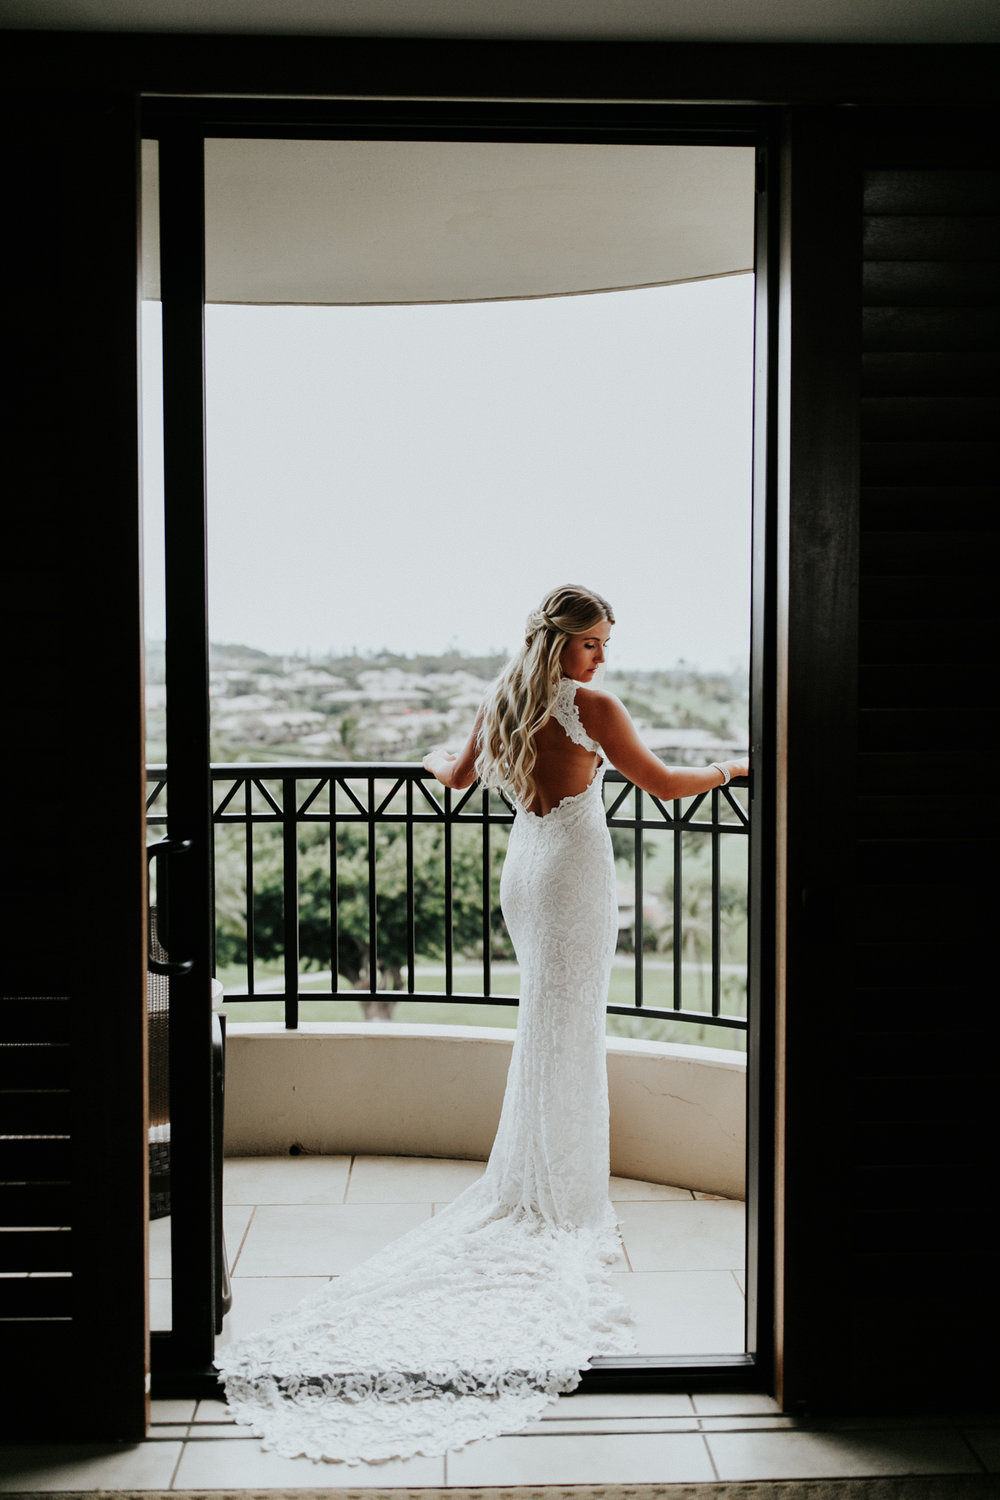 destination-wedding-photographer-hawaii-maui-elopement-28.jpg